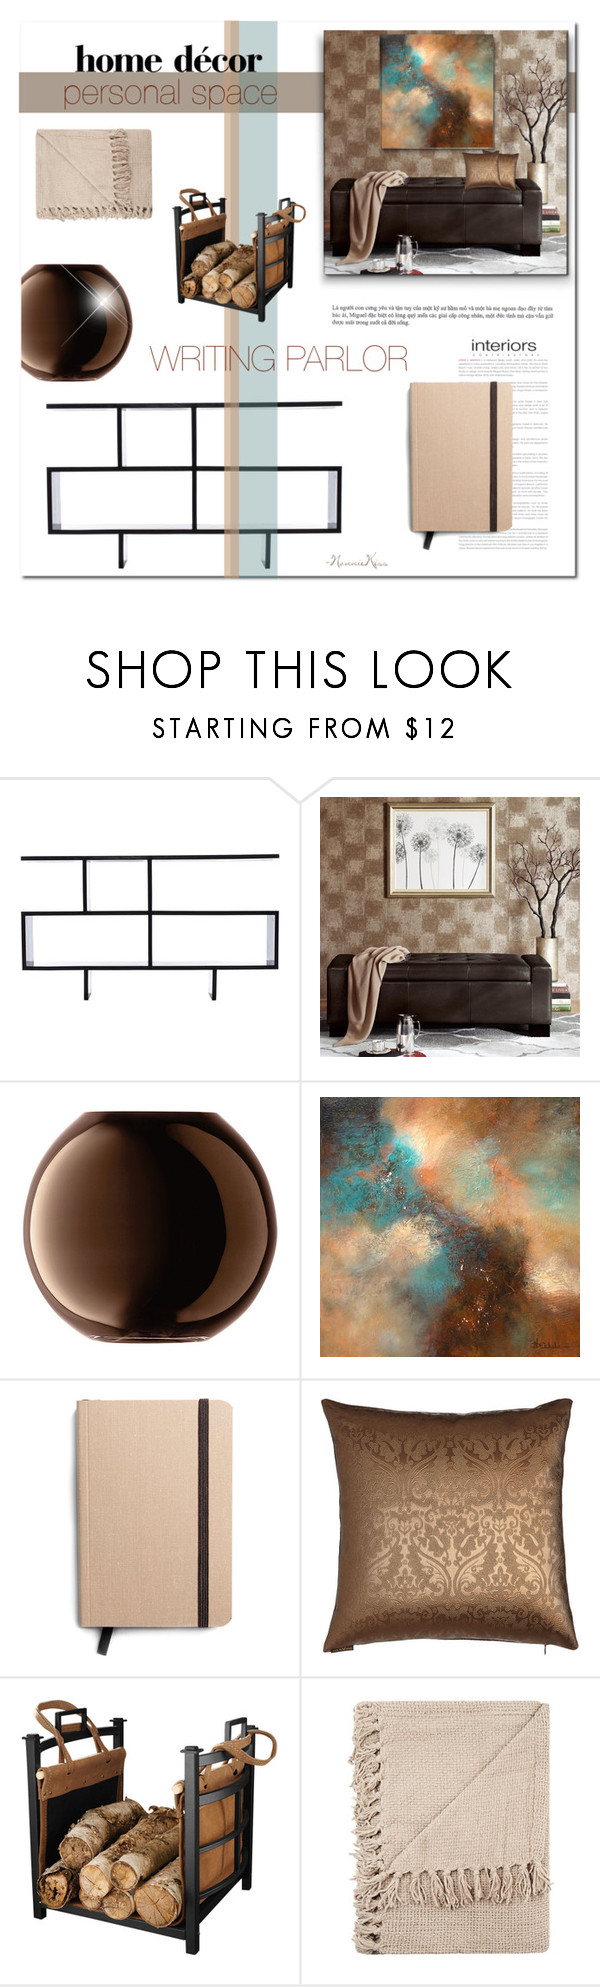 """Personal Space - Parlor"" by nonniekiss on Polyvore featuring interior, interiors, interior design, home, home decor, interior decorating, Madison Park, LSA International and Shinola"